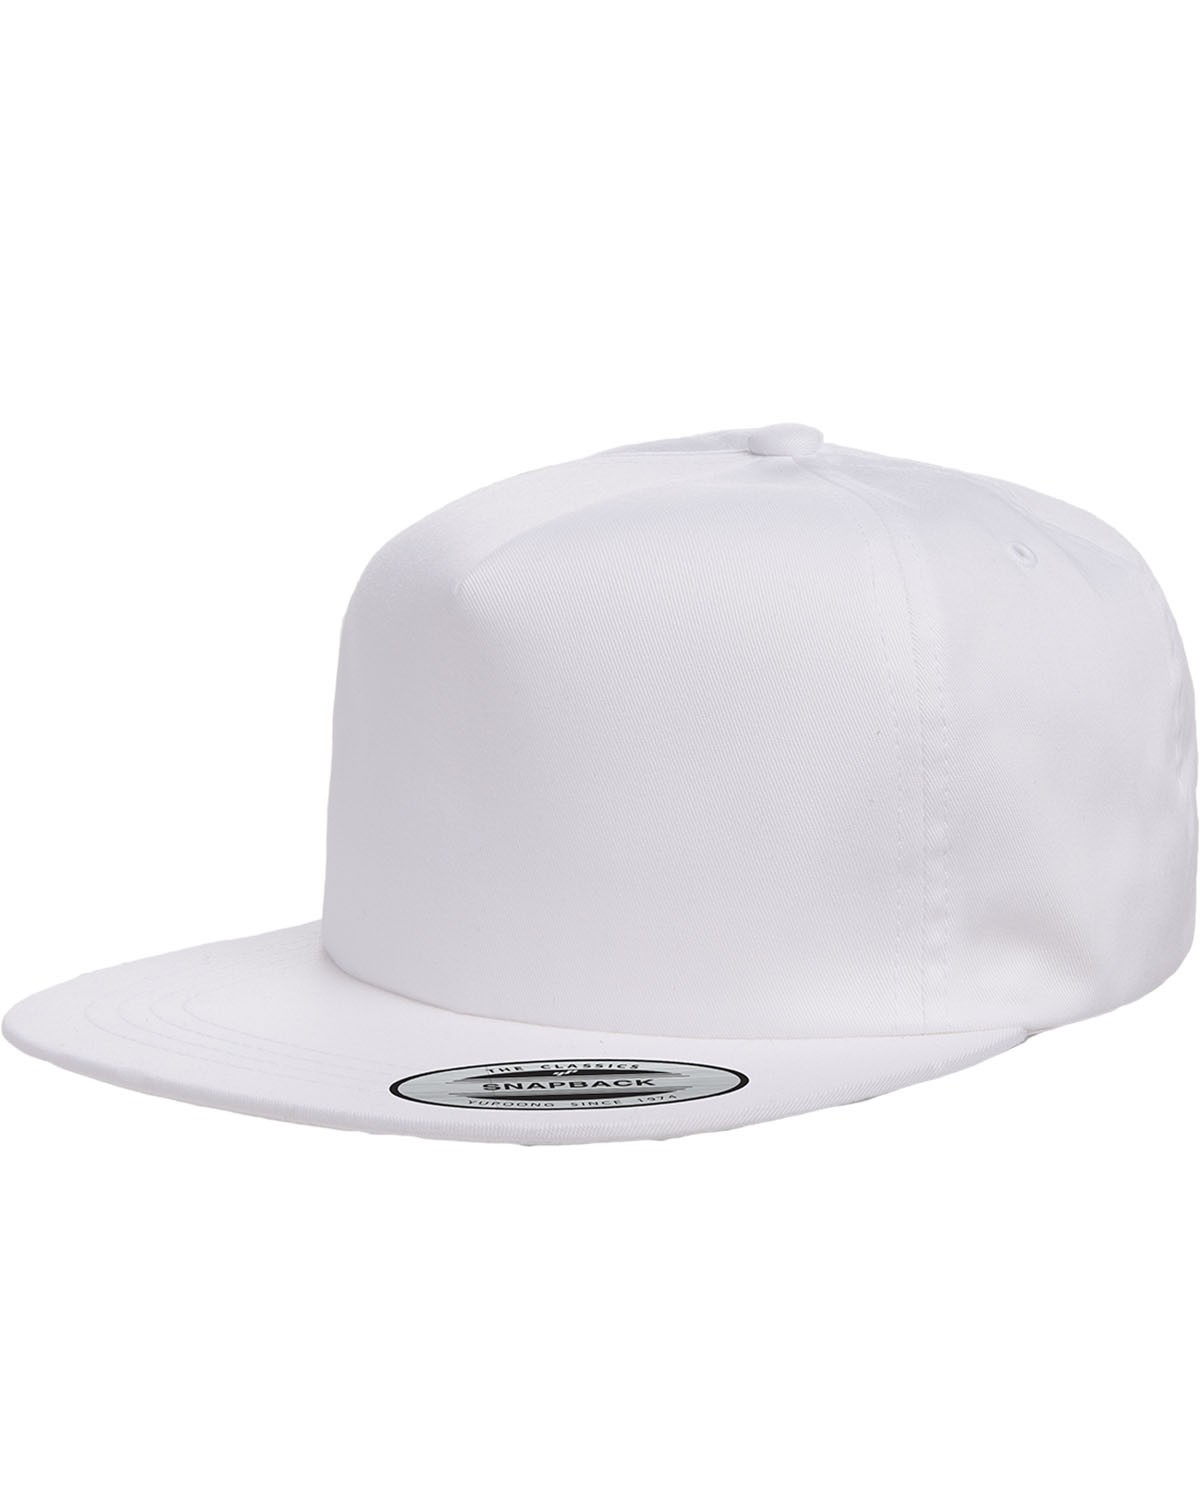 Y6502 Yupoong WHITE